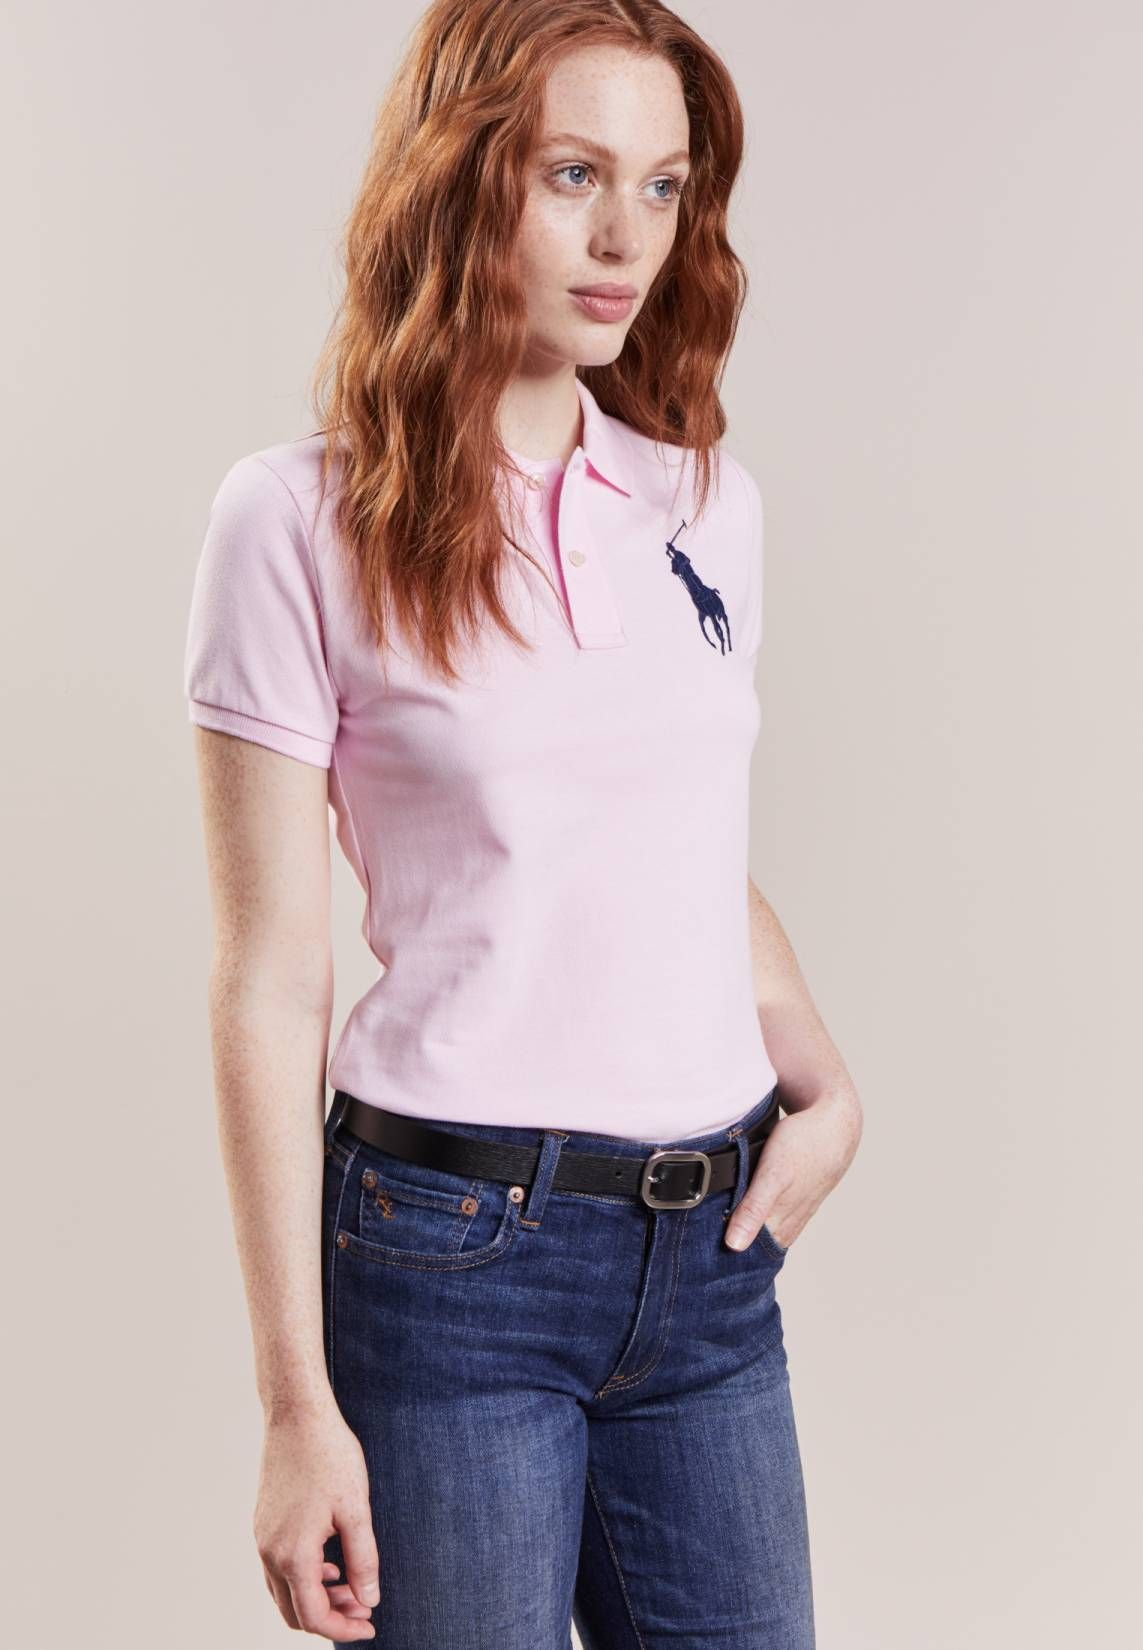 e39a62df547 Polo Ralph Lauren. Polo shirt - country club pink/navy. Our model's height